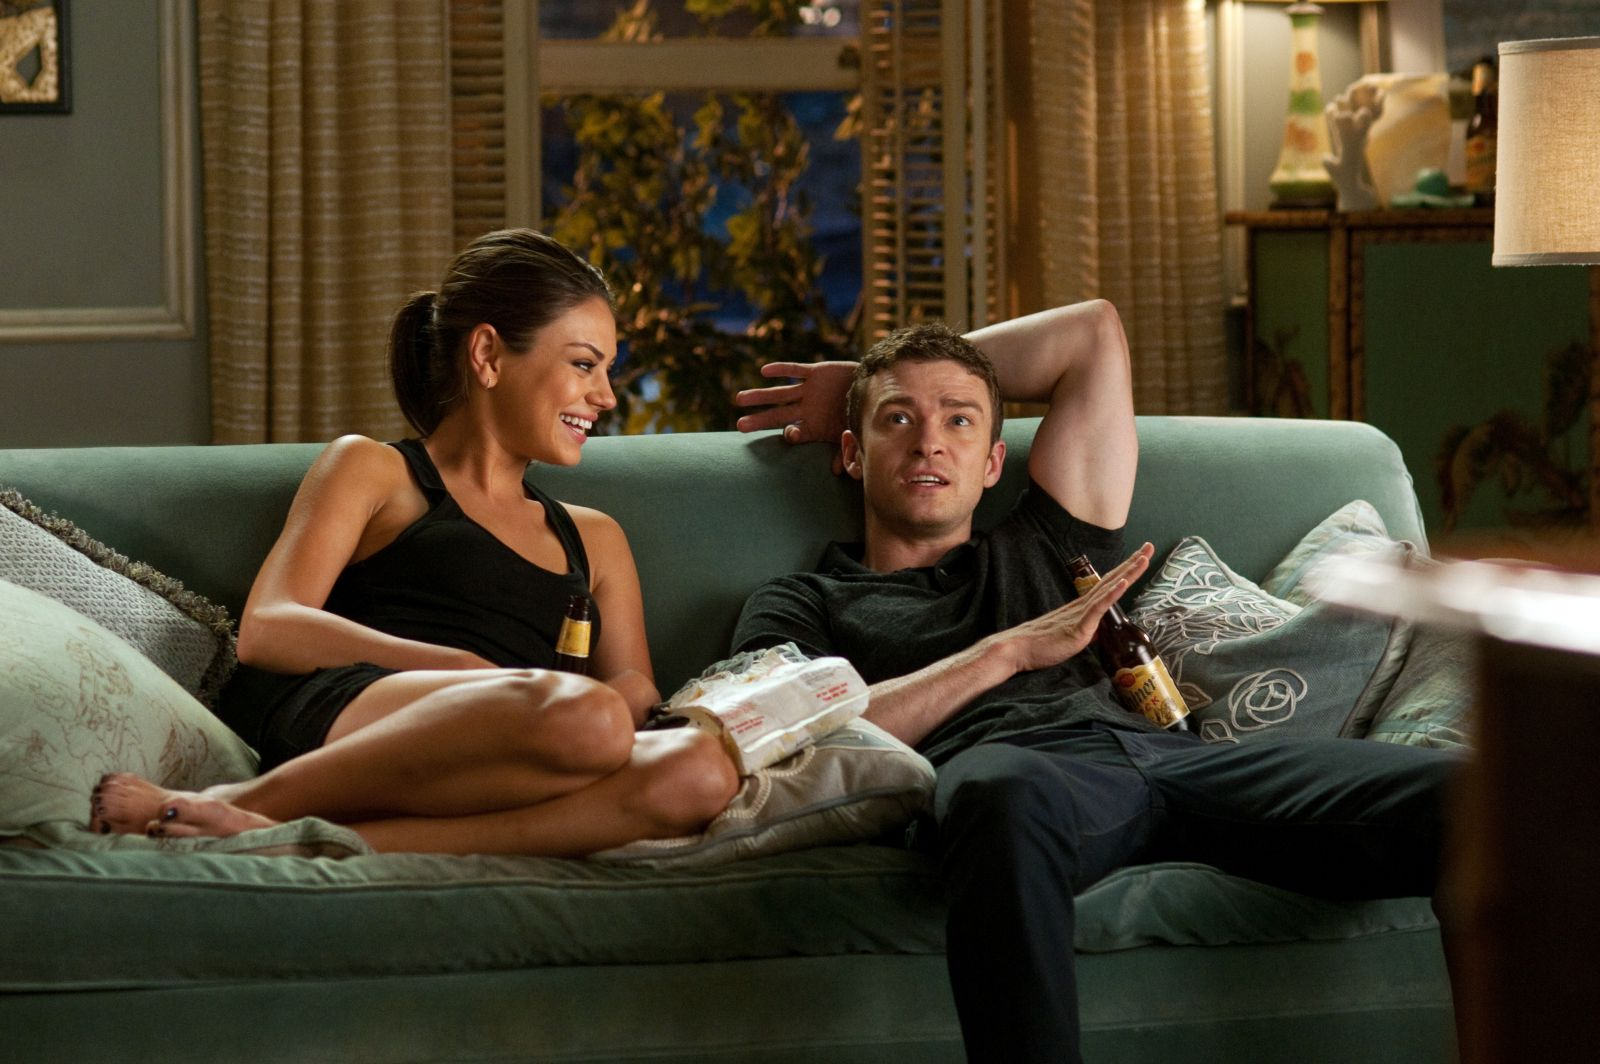 friends-with-benefits-mila-kunis-justin-timberlake-fotografi